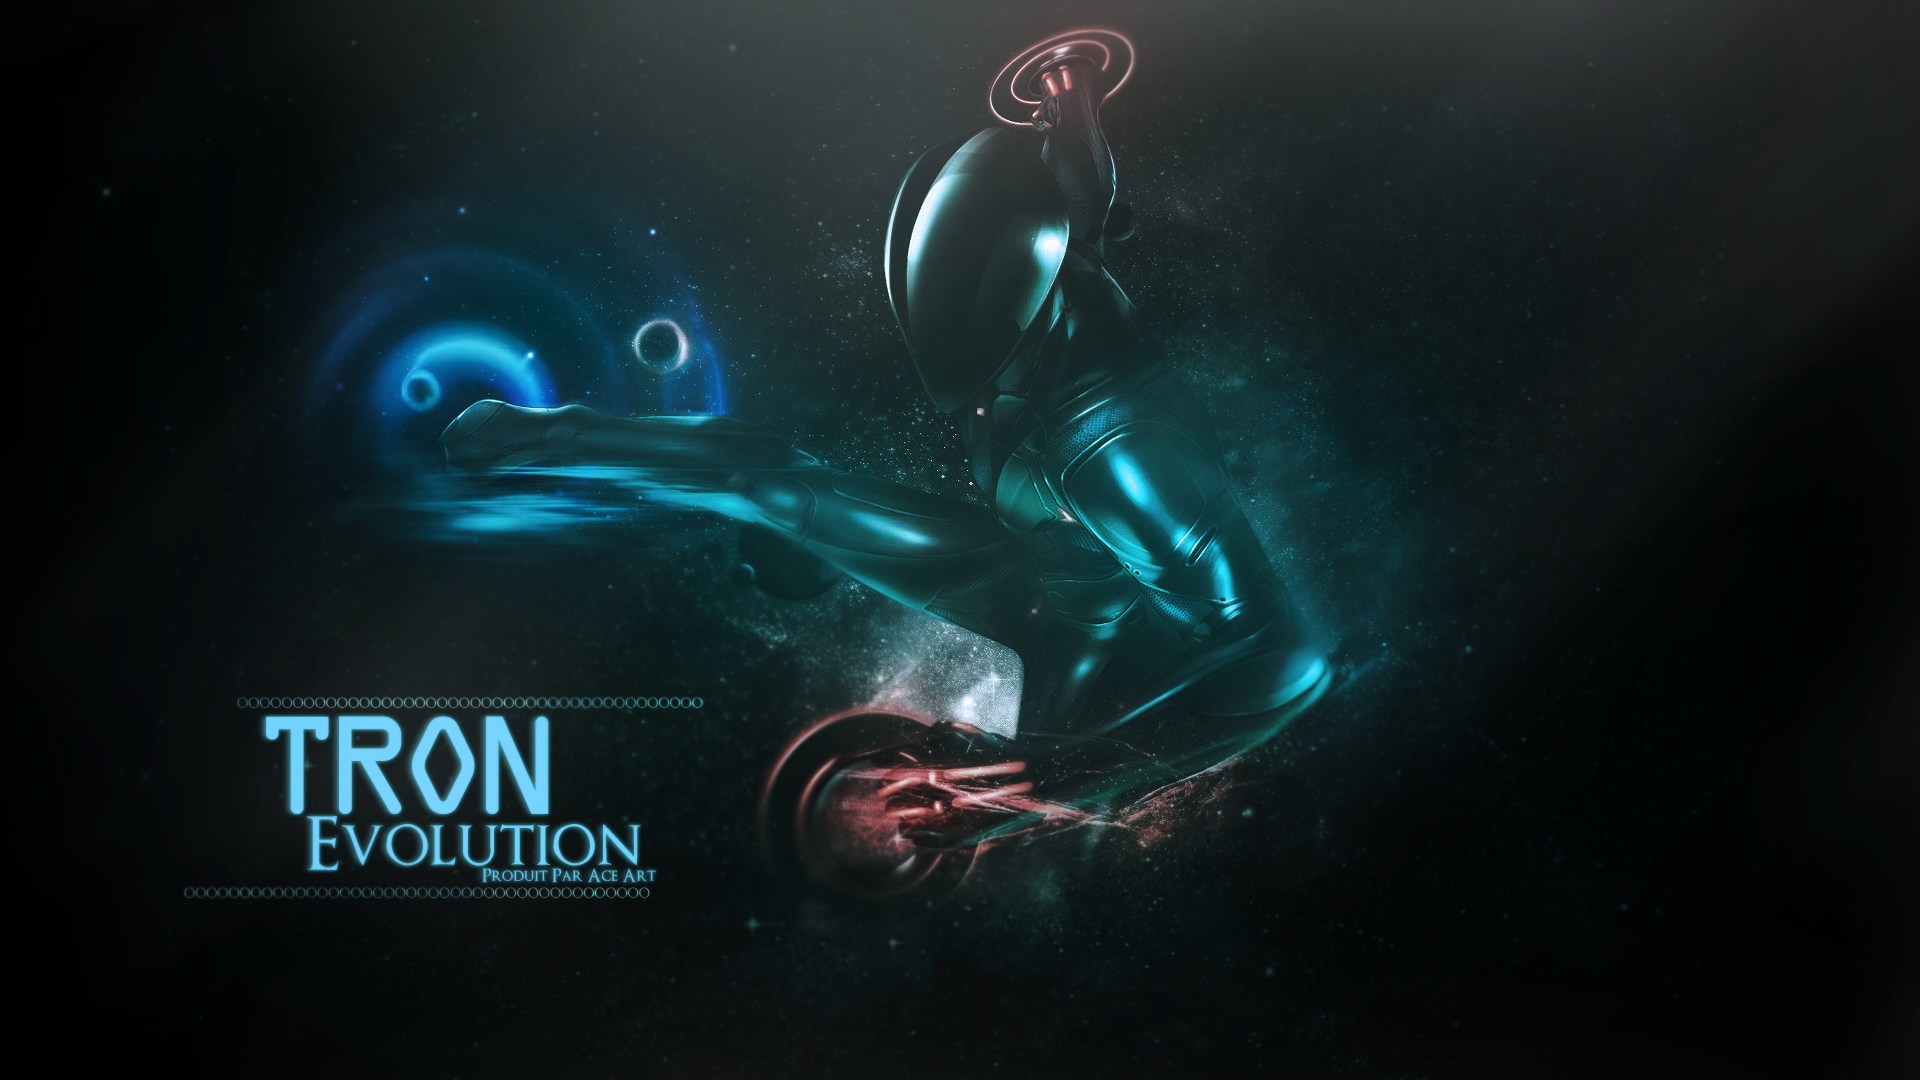 2010 tron evolution wallpapers - photo #24